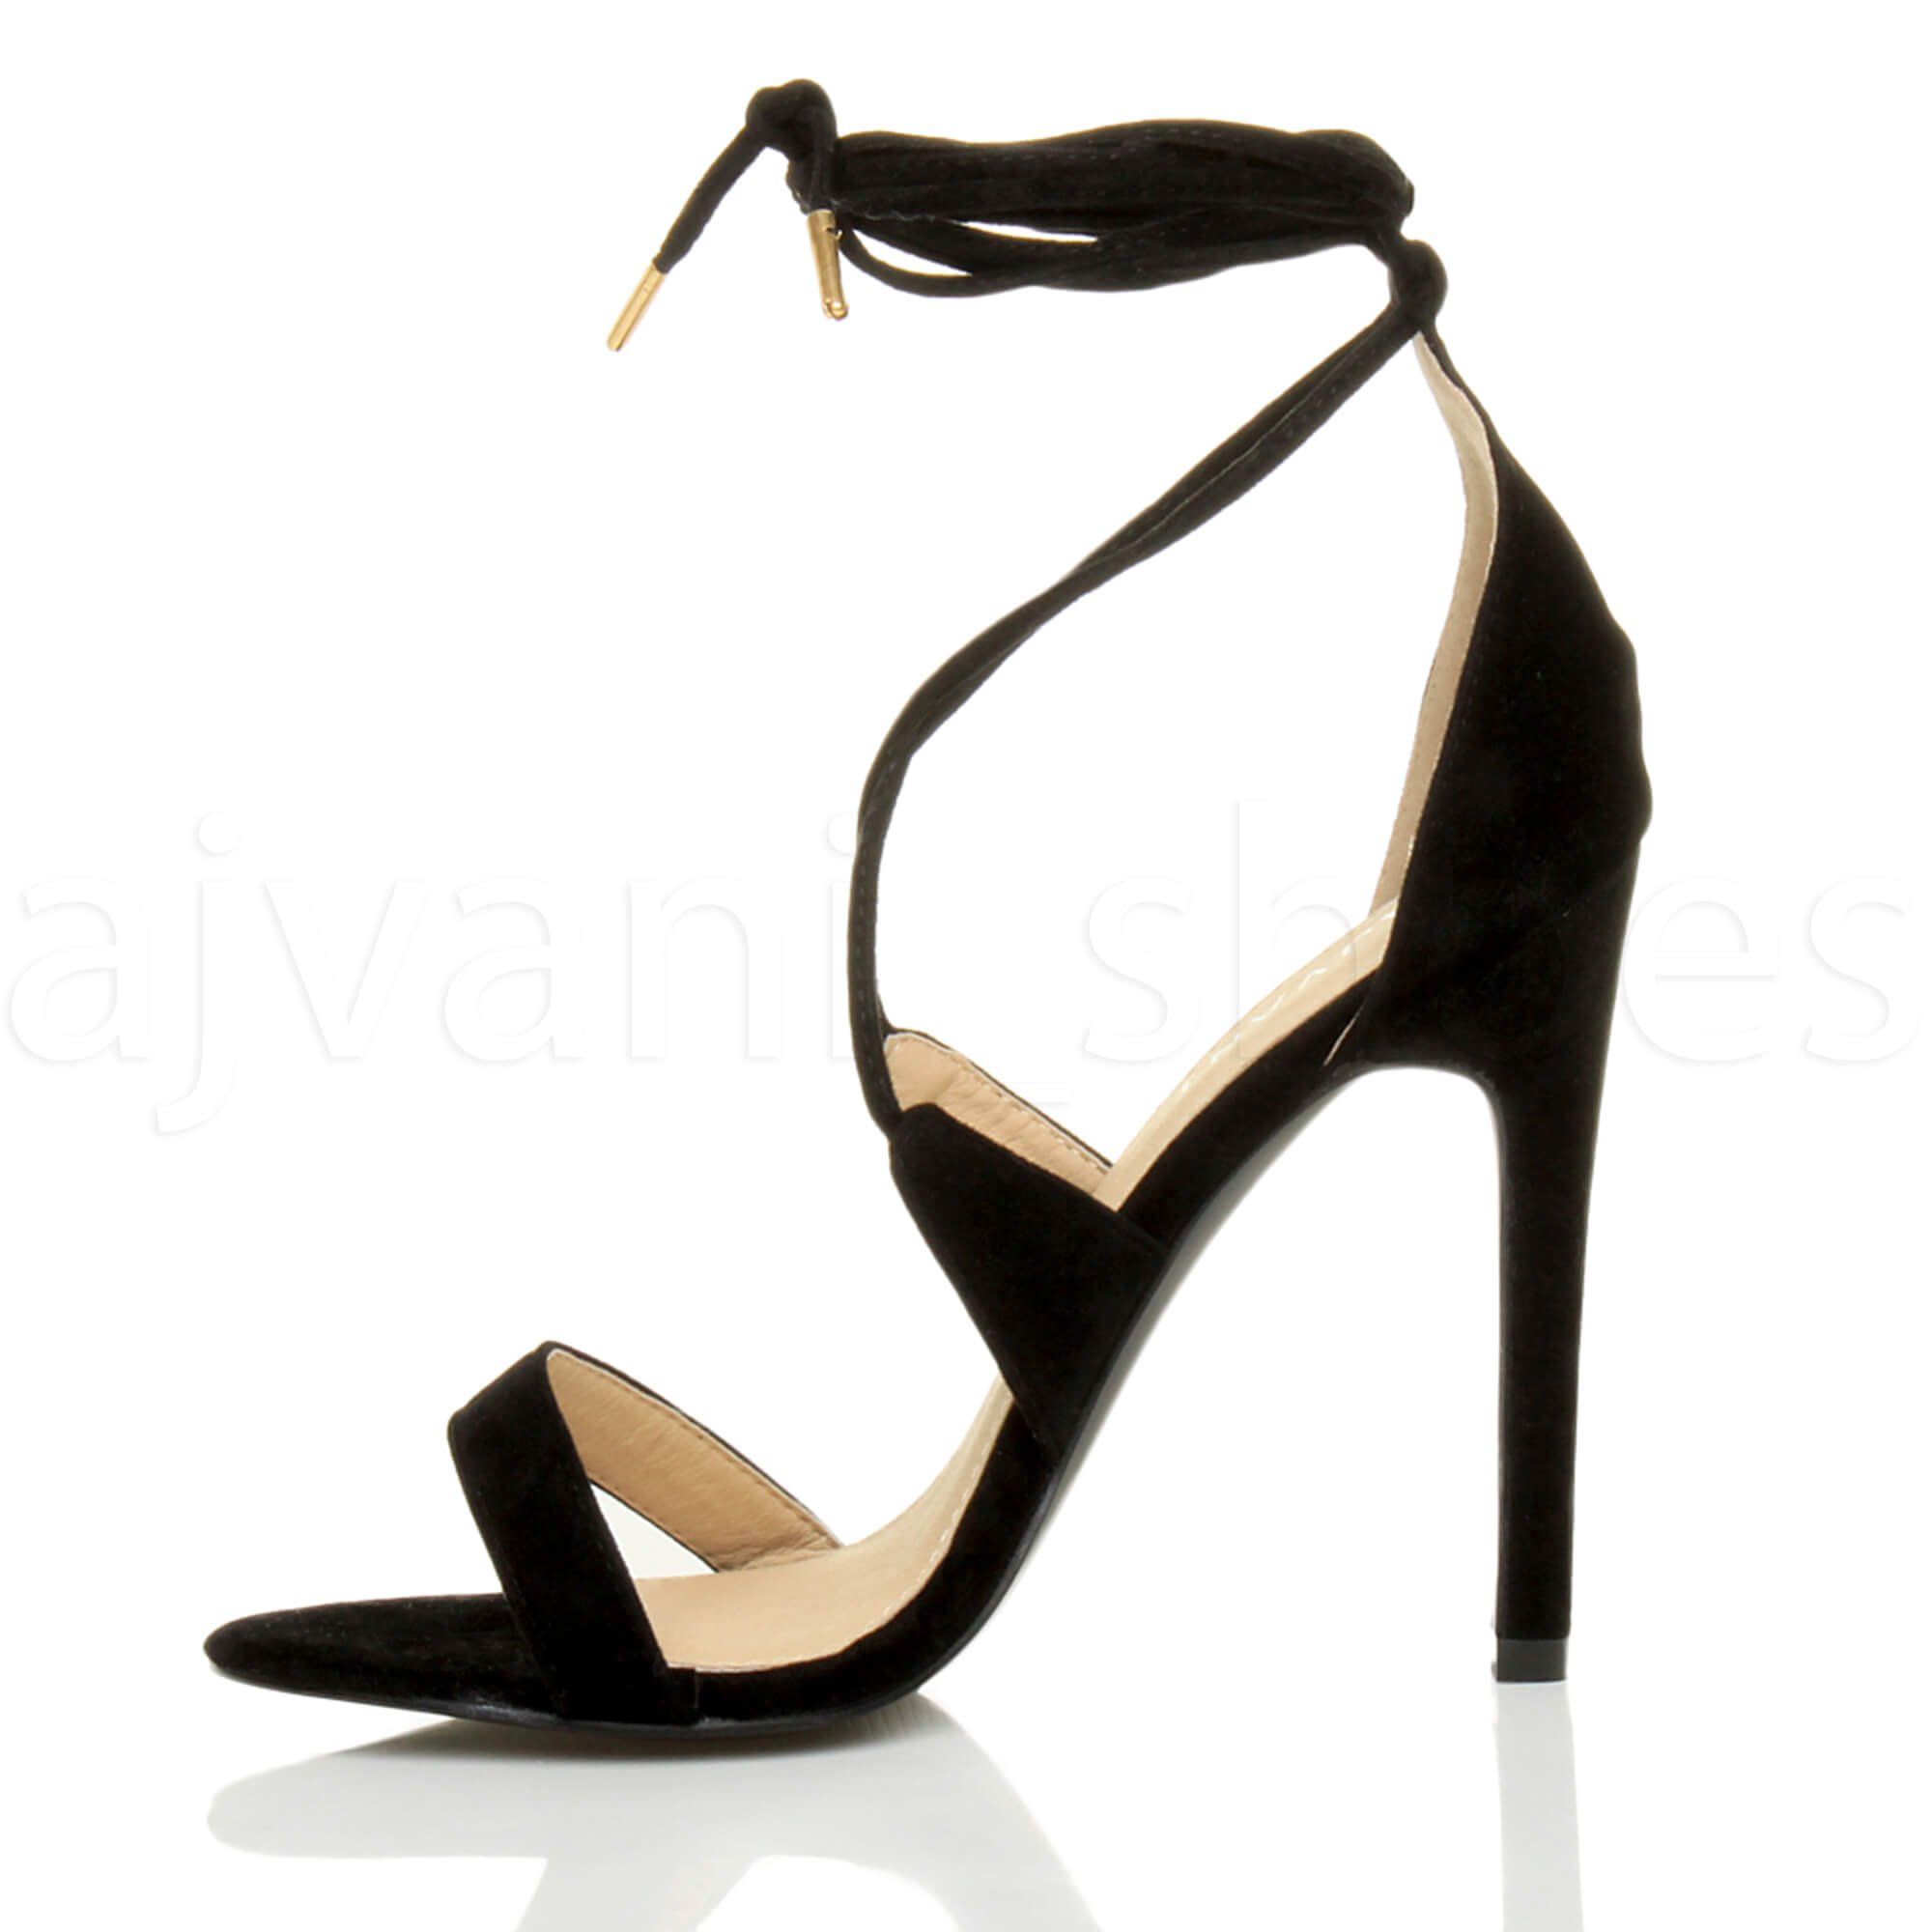 WOMENS-LADIES-HIGH-HEEL-BARELY-THERE-STRAPPY-LACE-TIE-UP-SANDALS-SHOES-SIZE thumbnail 10